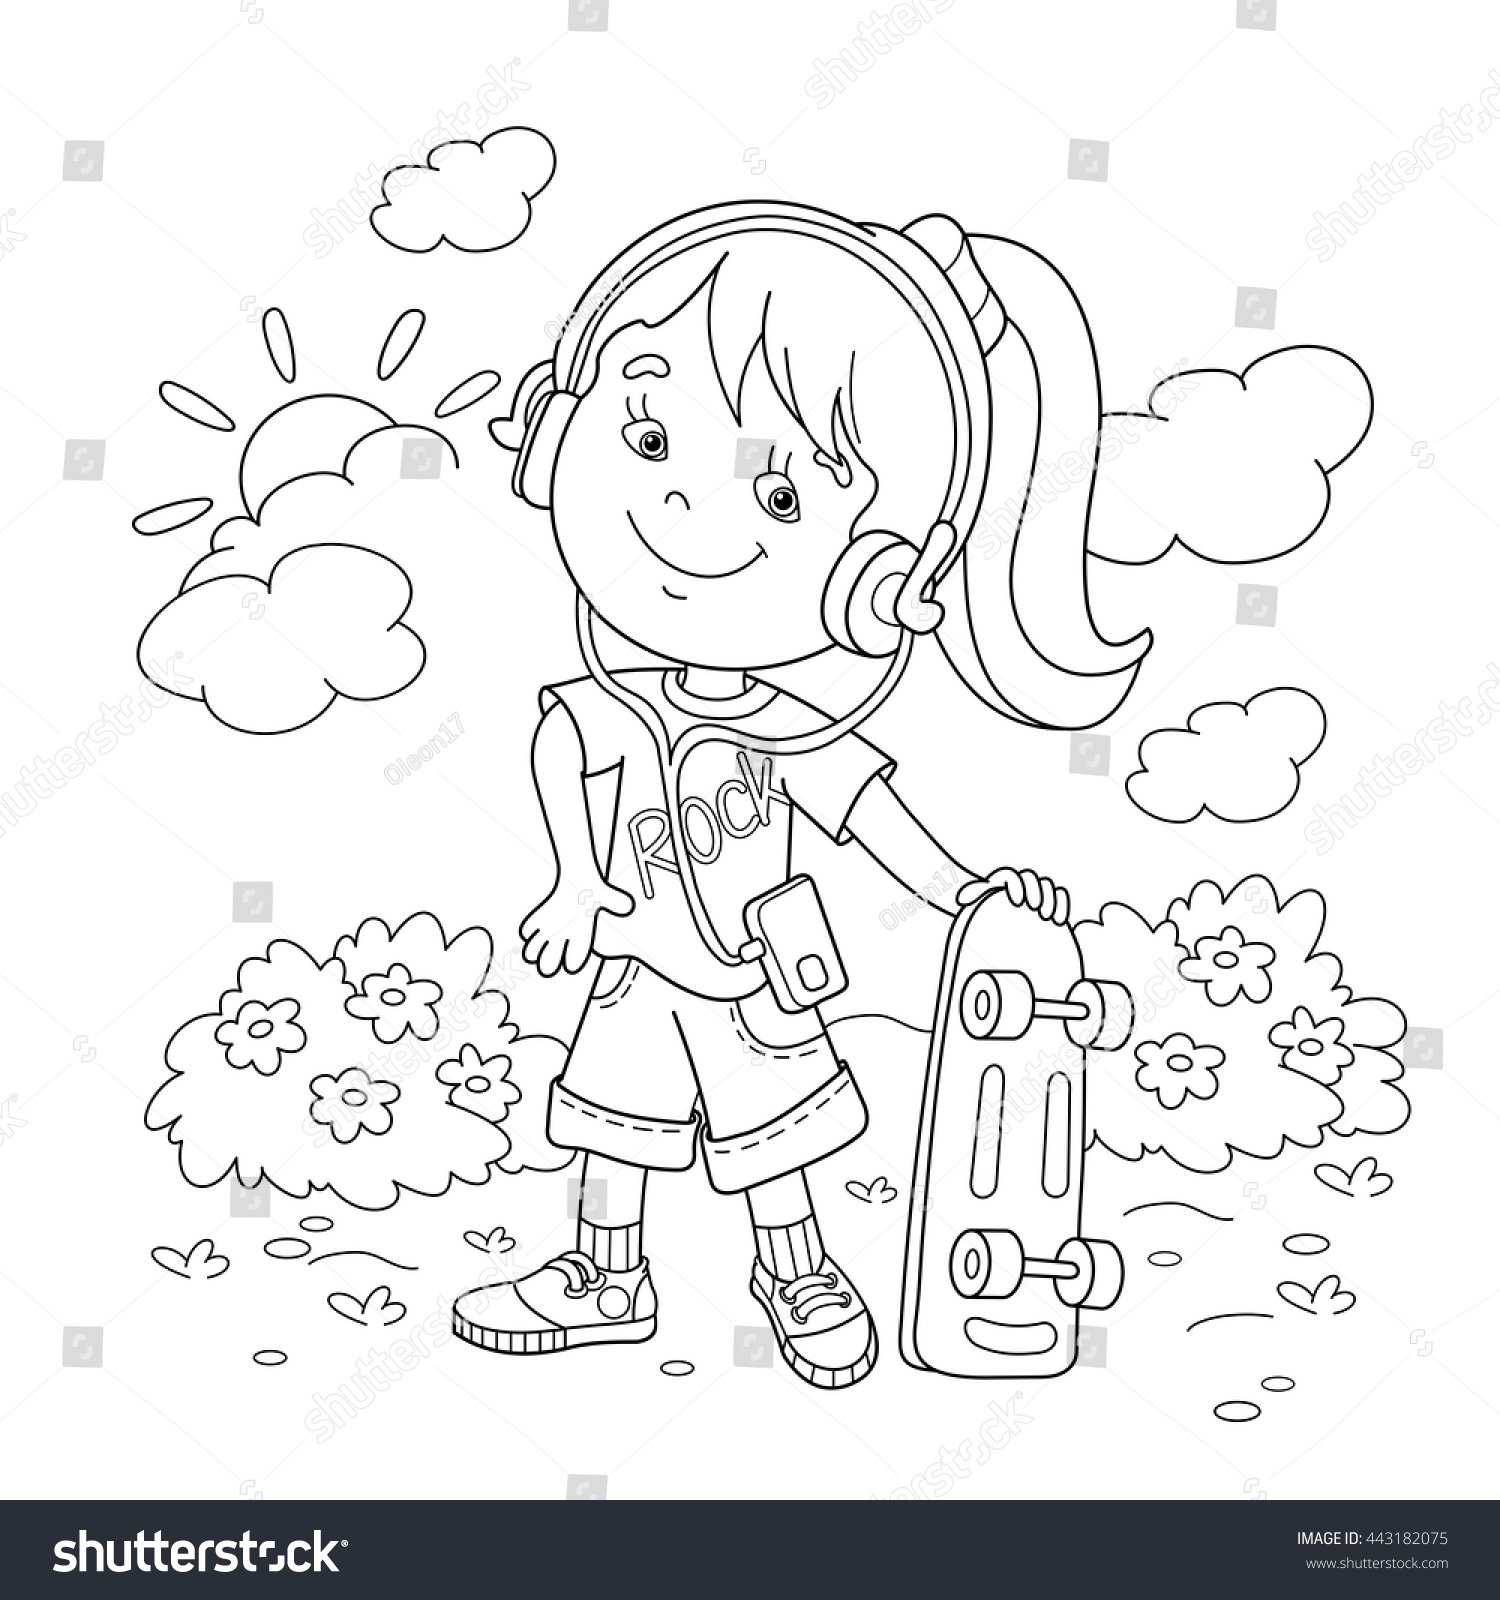 Coloring book for girl - Coloring Page Outline Of Cartoon Girl In Headphones With Skateboard Coloring Book For Kids